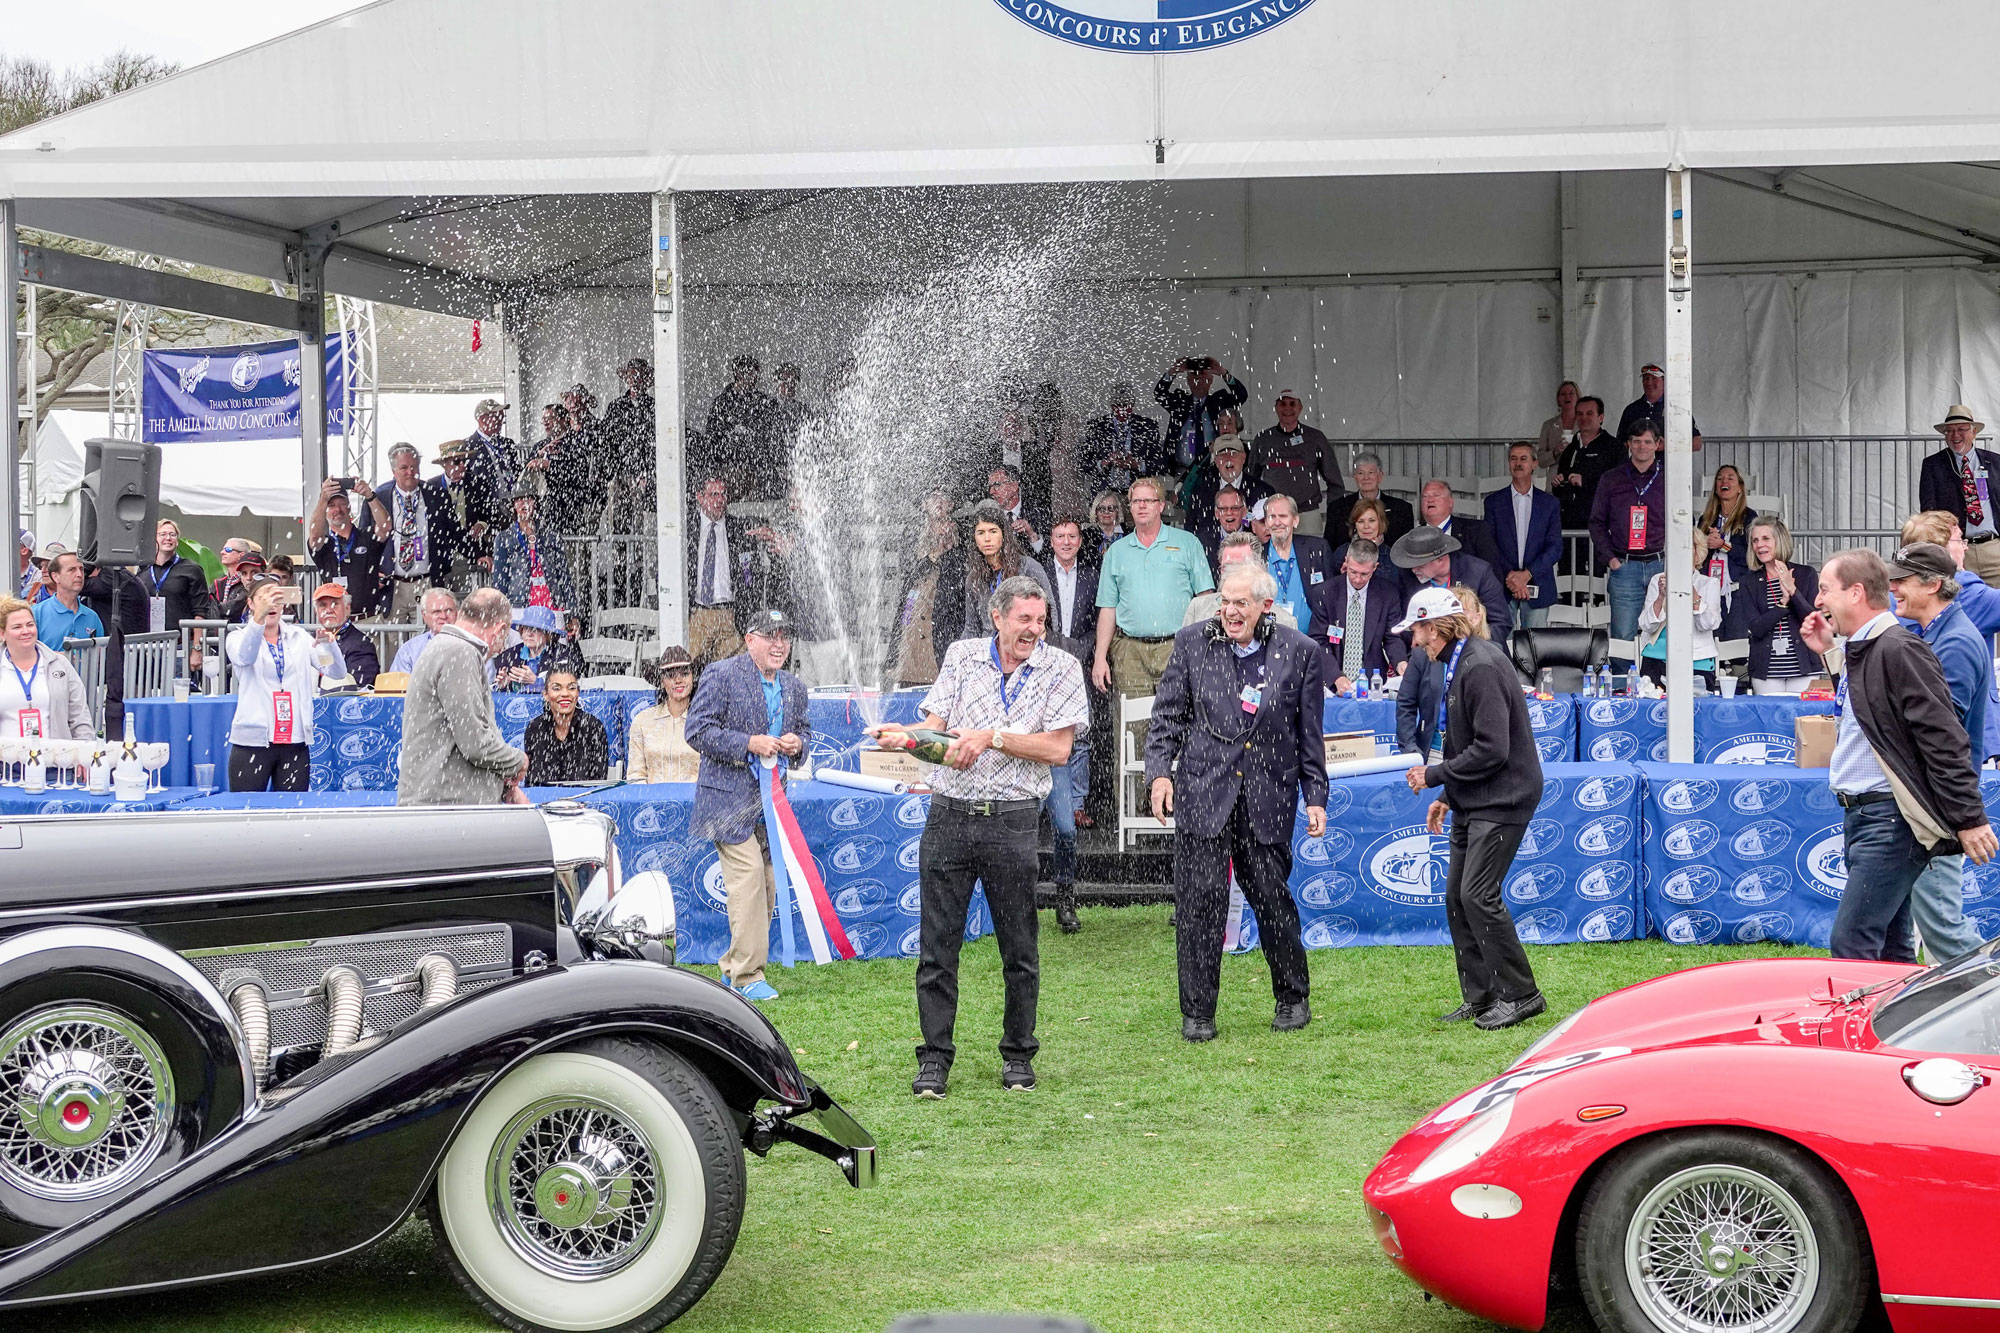 Your guide to the 2019 Amelia Island Concours d'Elegance